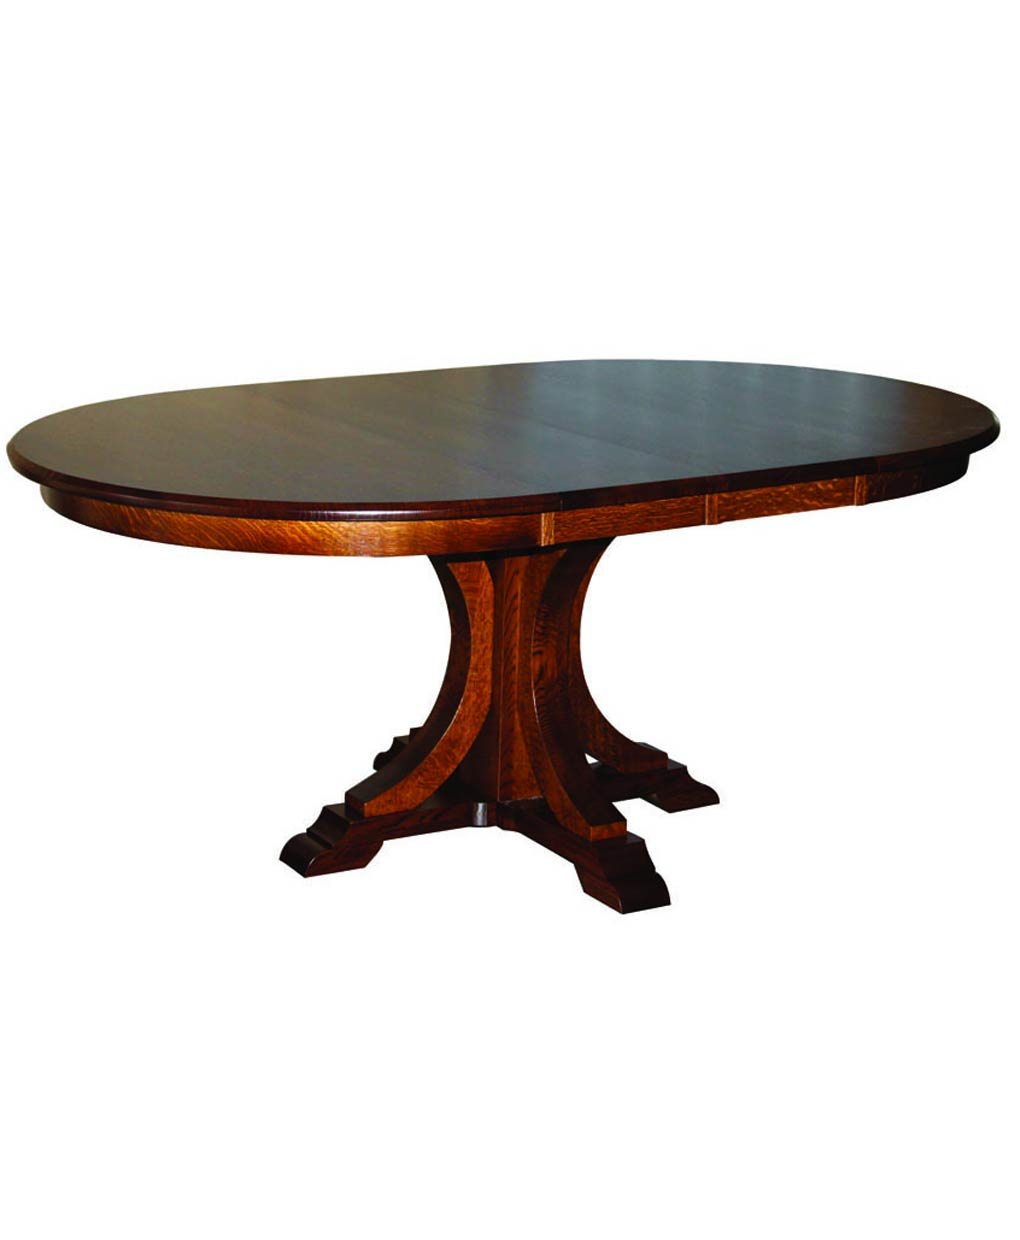 Buckeye Pedestal Table Amish Direct Furniture : BuckeyePedestalTable from amishdirectfurniture.com size 1020 x 1240 jpeg 31kB